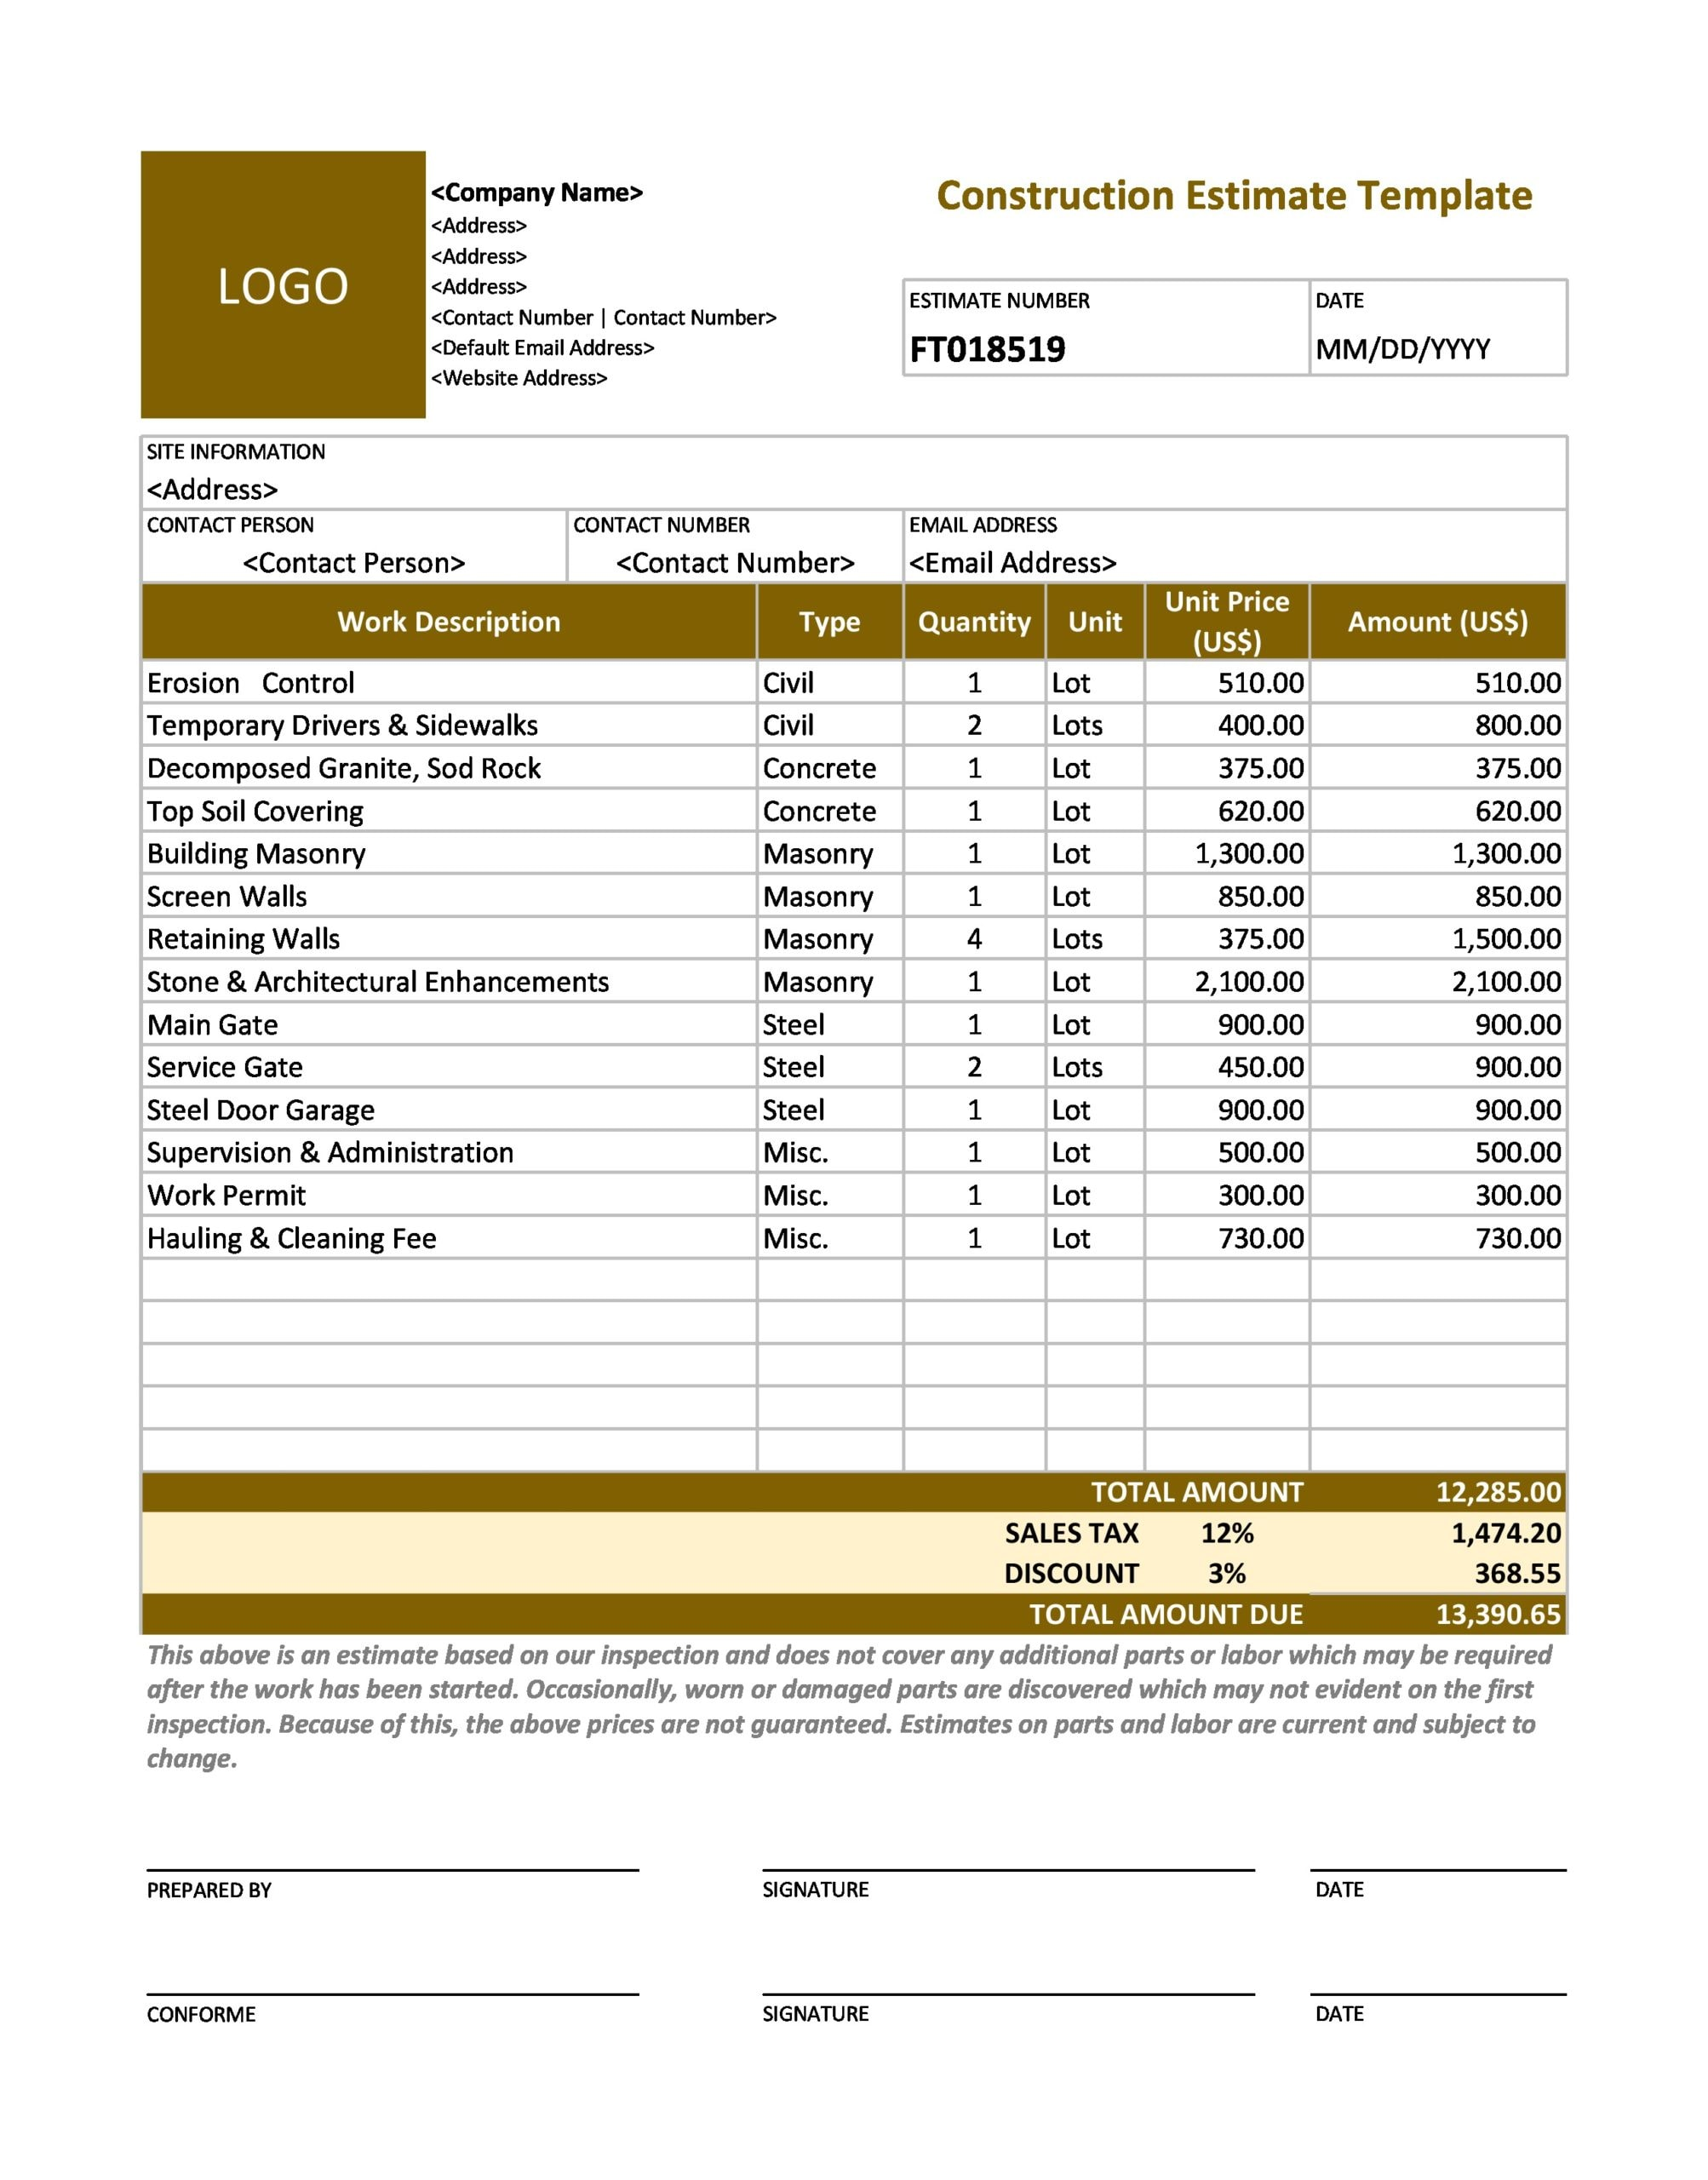 25 Perfect Construction Estimate Templates (FREE) - TemplateArchive Pertaining To Blank Estimate Form Template